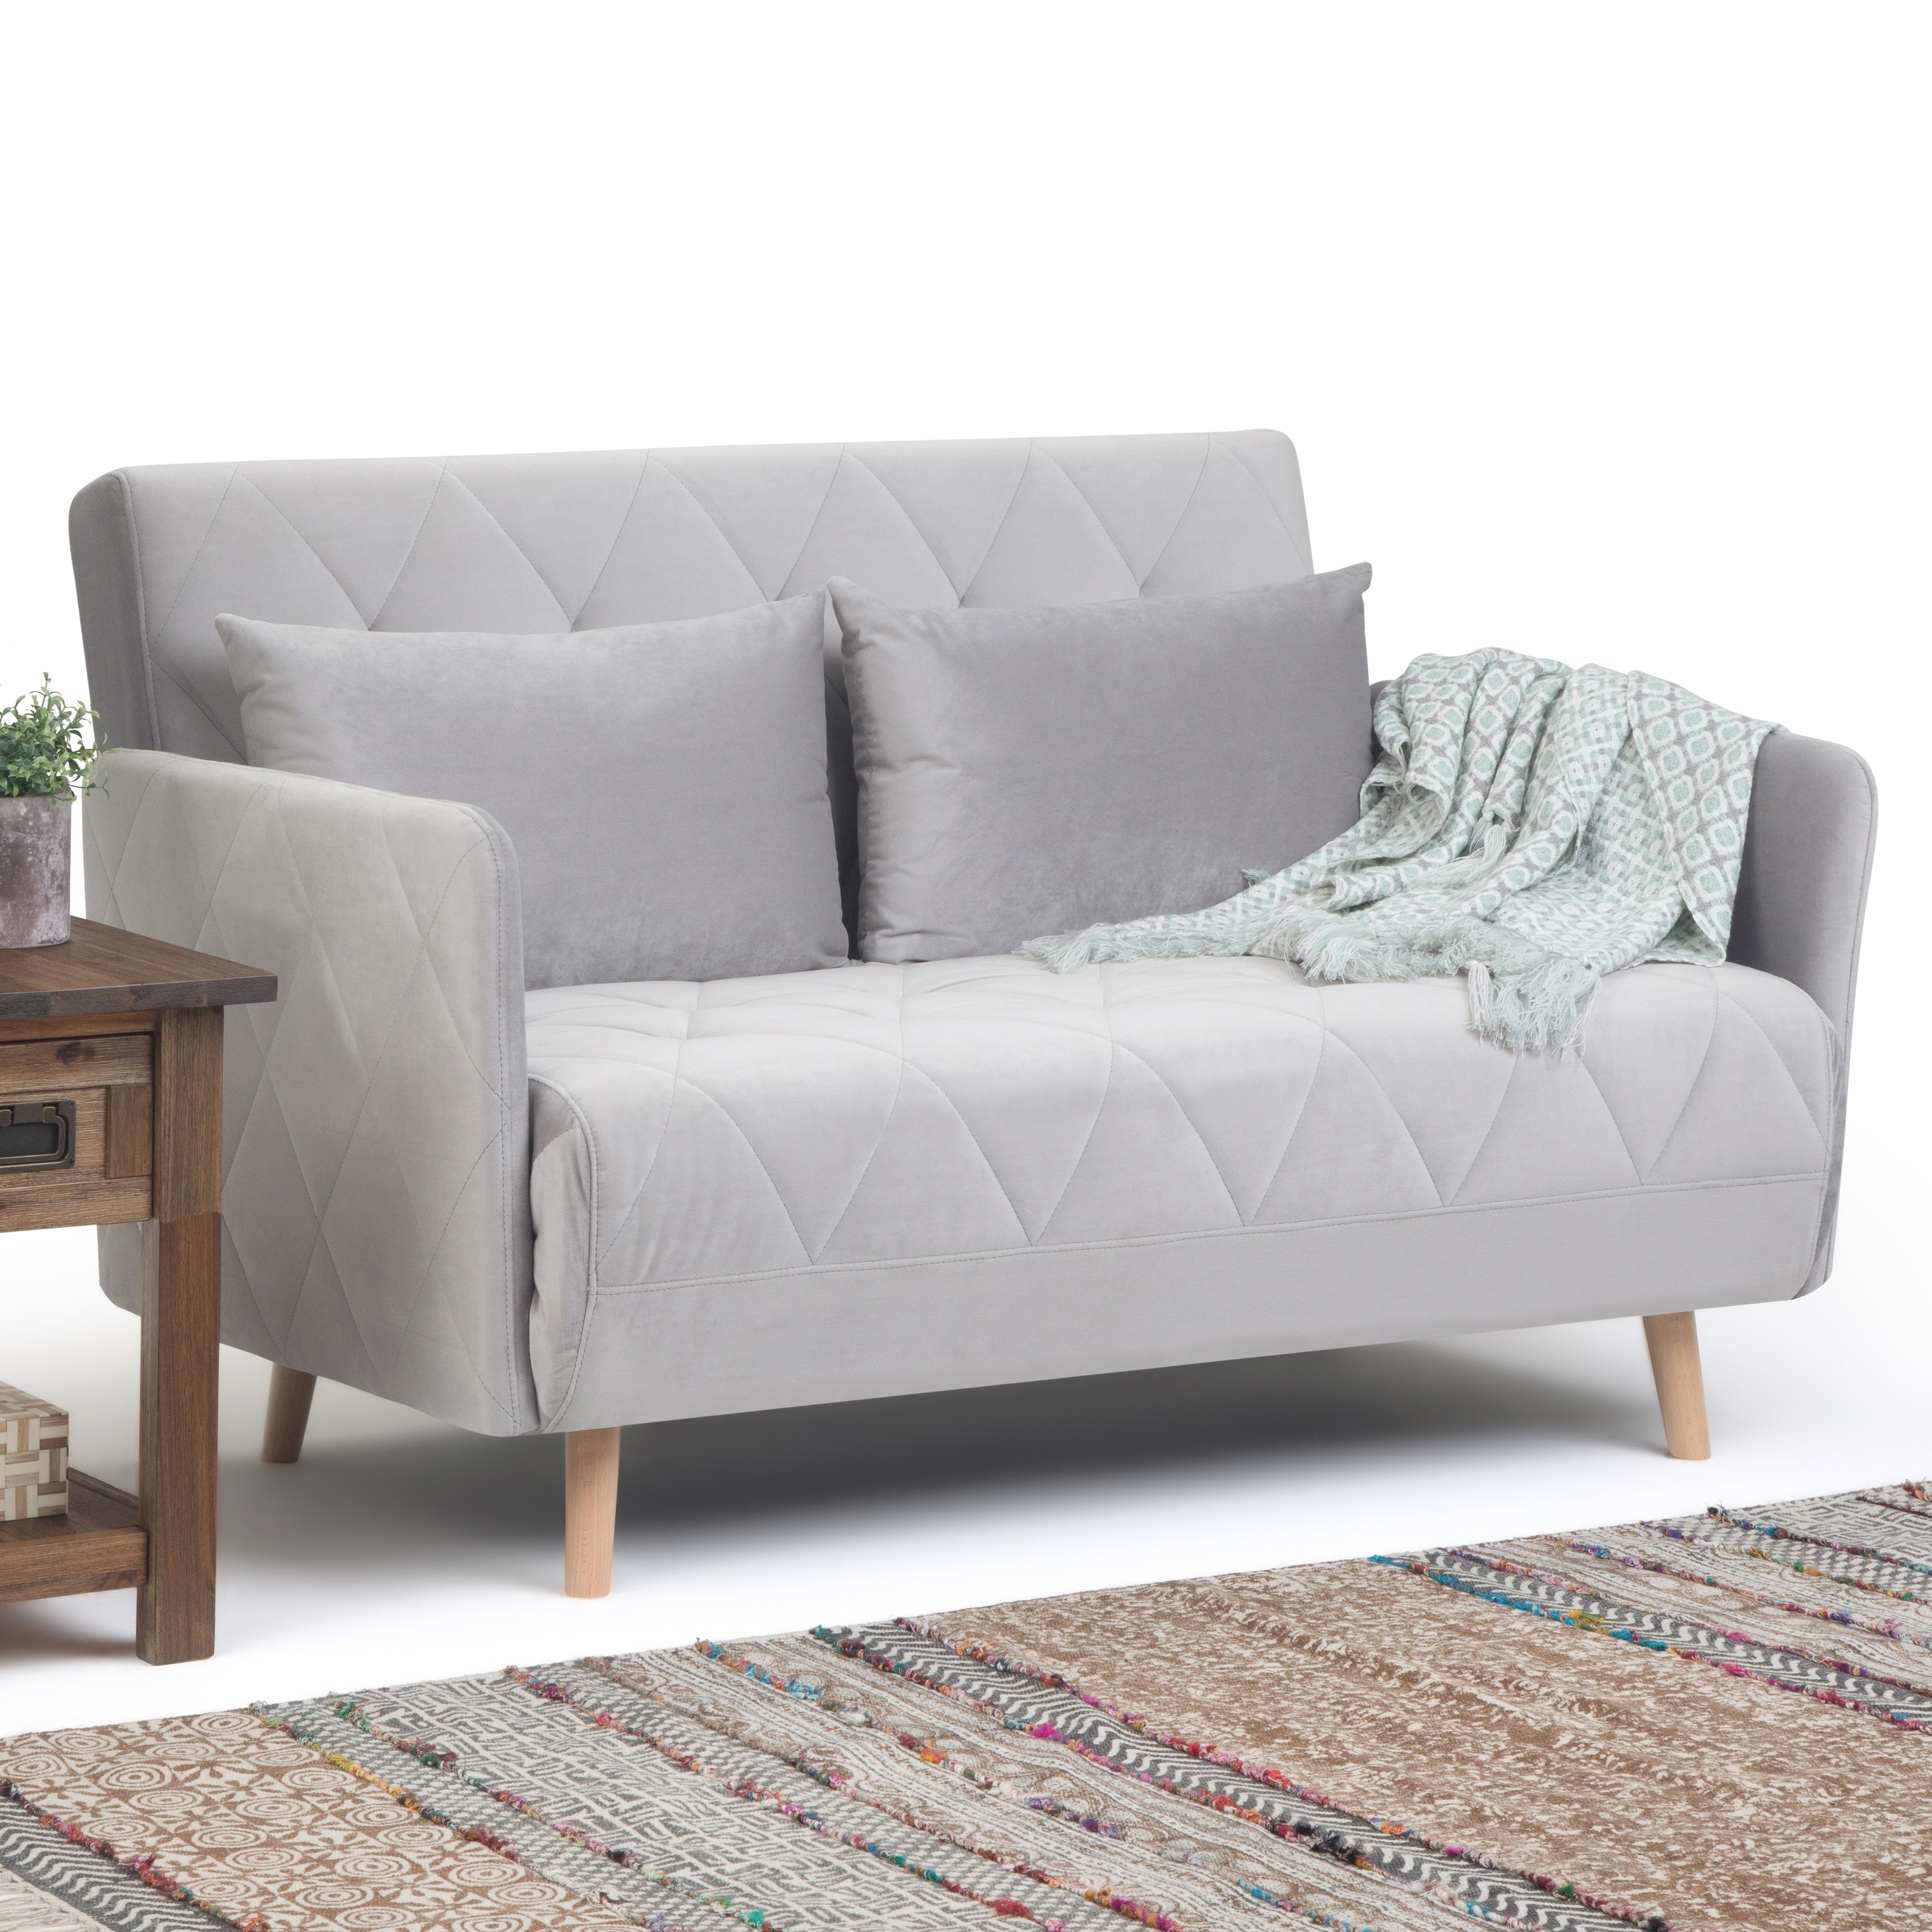 Fold Out Couches